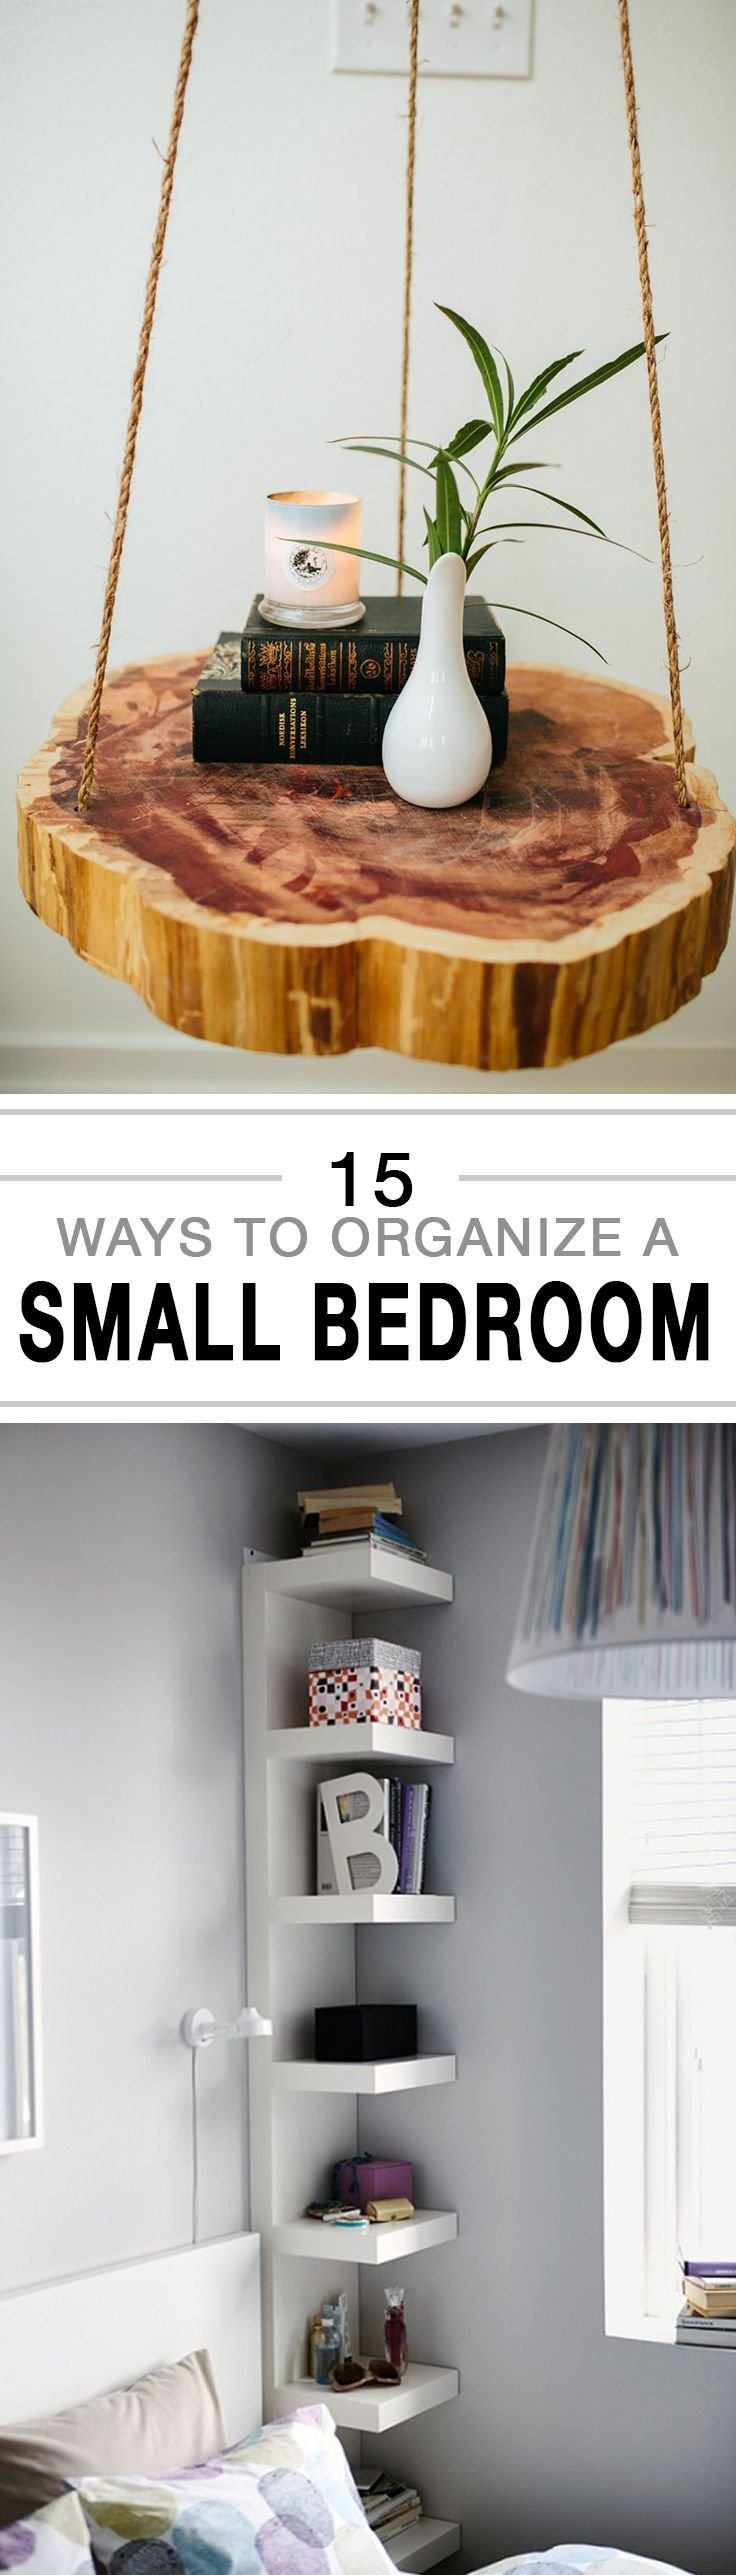 Best 15 Ways To Organize A Small Bedroom Pb Apartment Small With Pictures